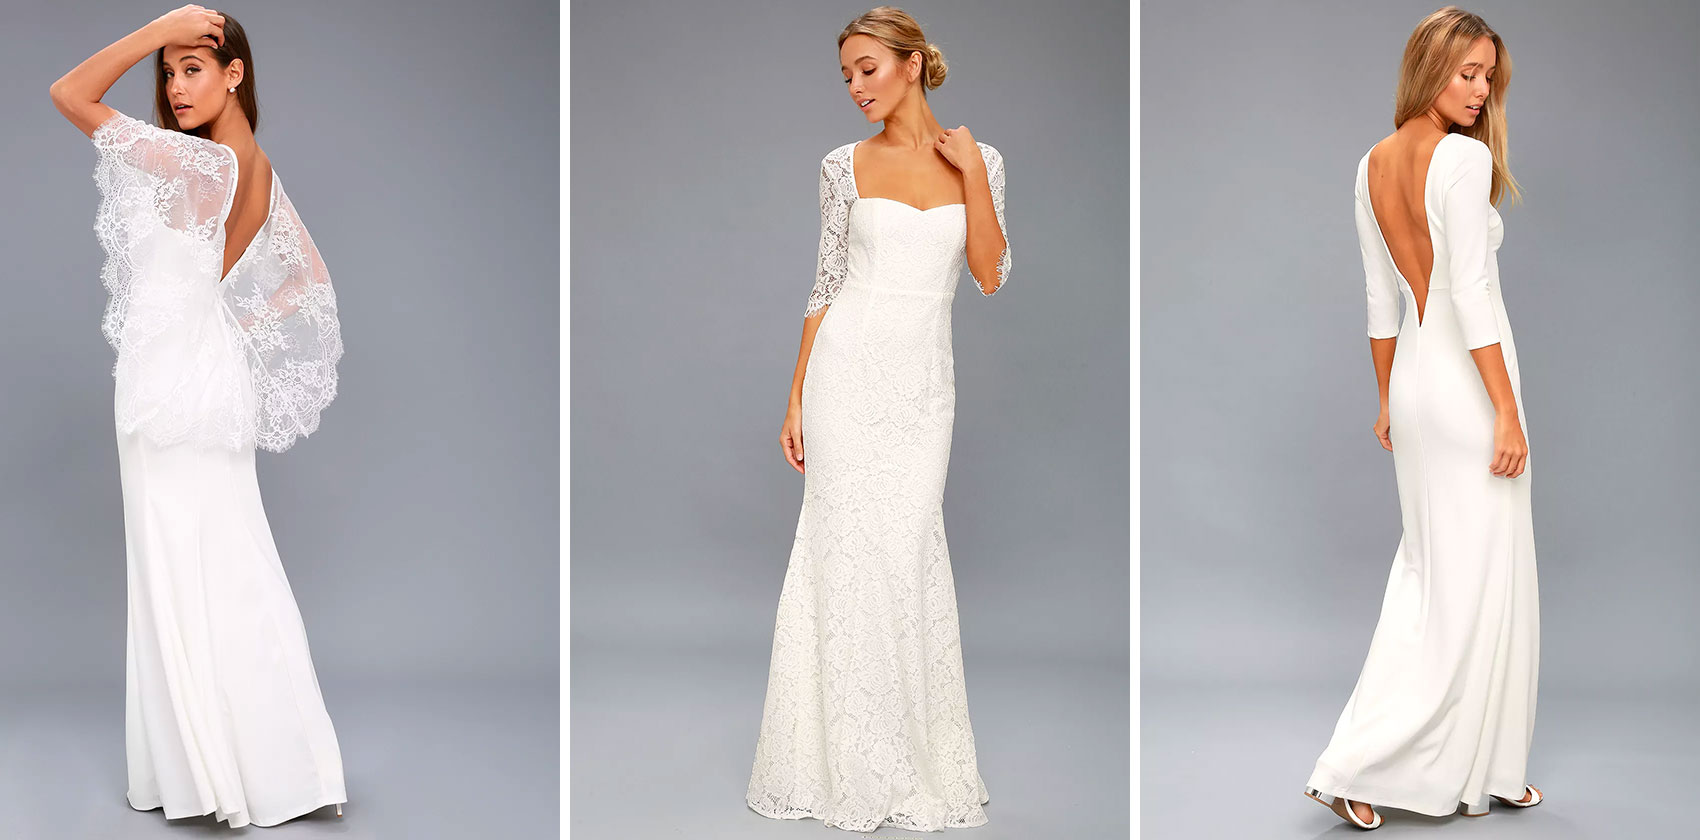 0260327f48f Our Everly White Lace Maxi Dress is also an amazing sleeveless bridal gown.  Featuring a classic silhouette in romantic lace and a plunging neckline  with ...